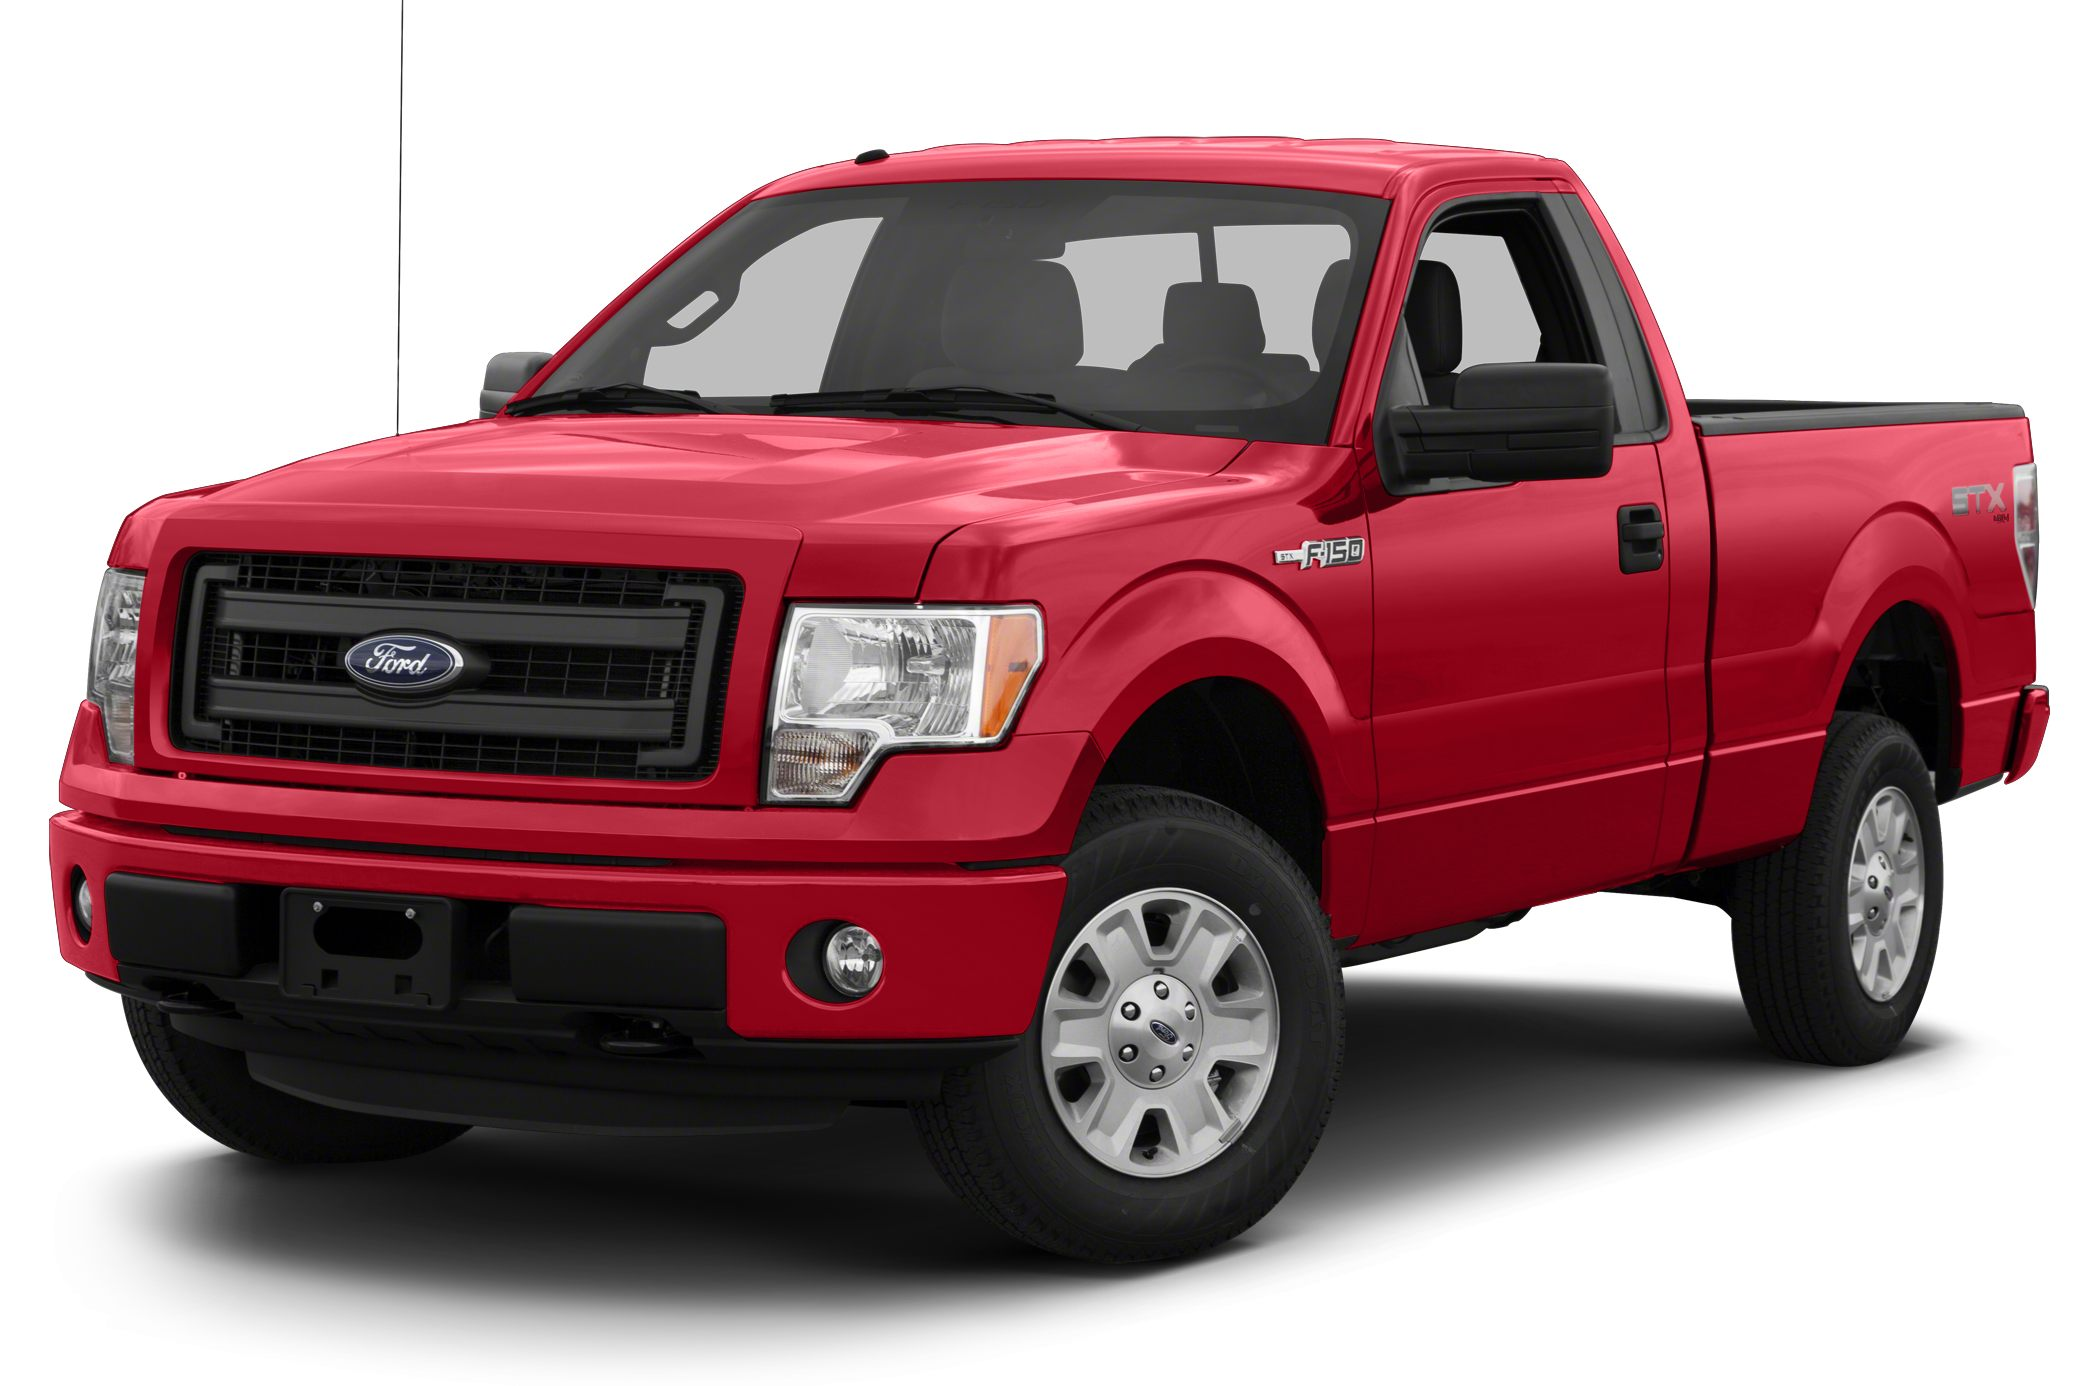 2013 Ford F150 XLT Crew Cab Pickup for sale in Petoskey for $30,495 with 38,286 miles.